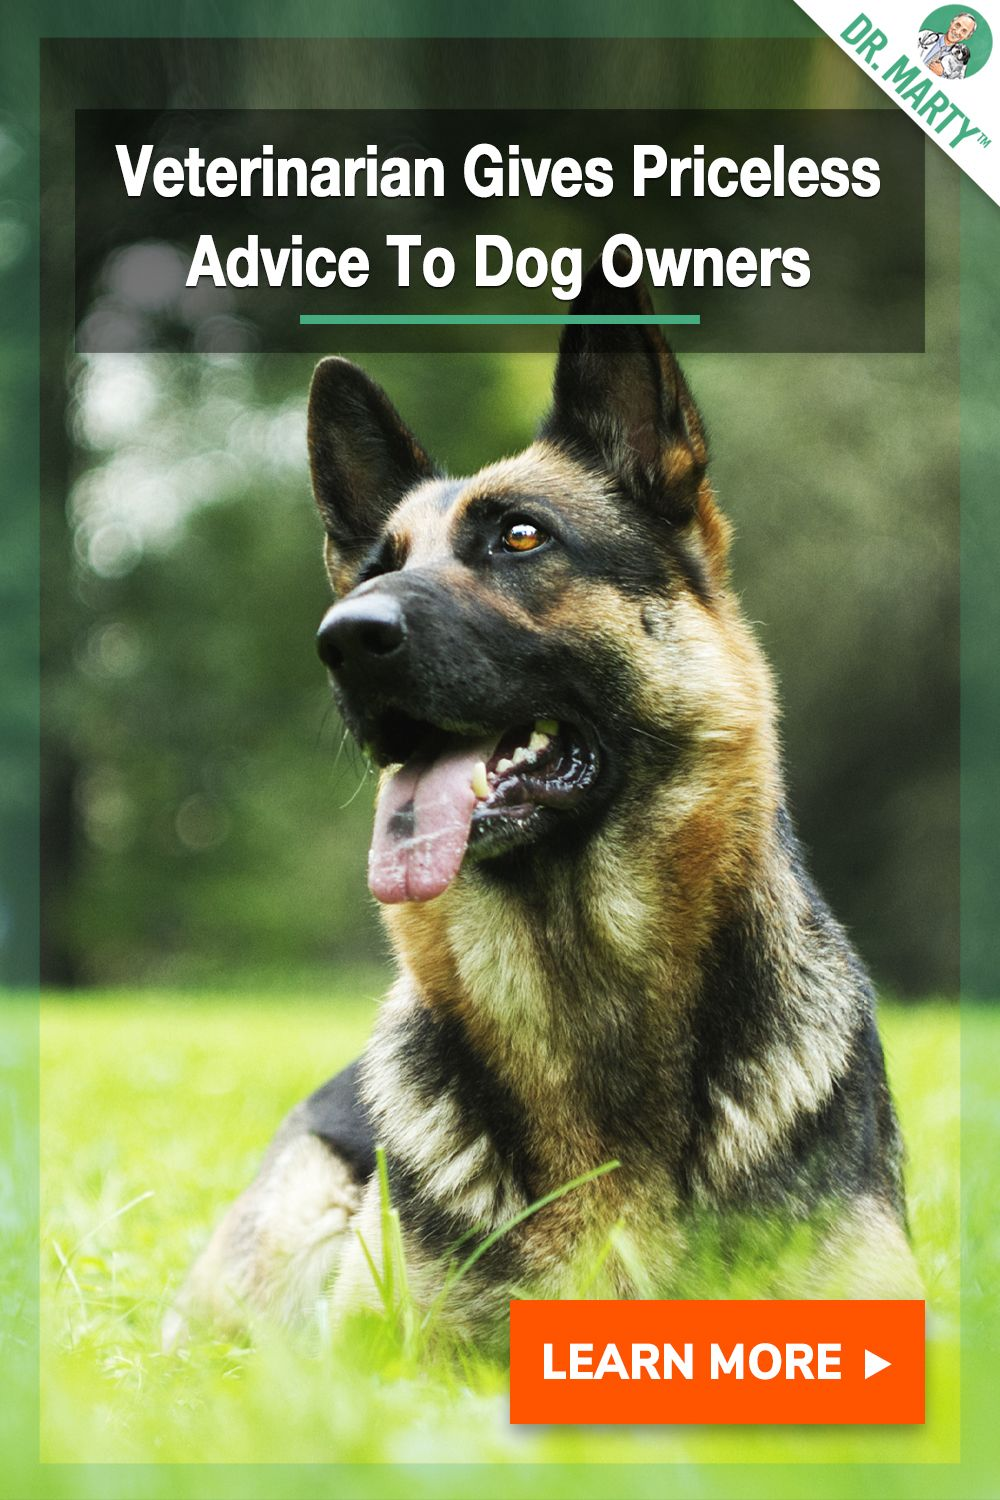 Veterinarian Gives Priceless Advice To Dog Owners Canine Care